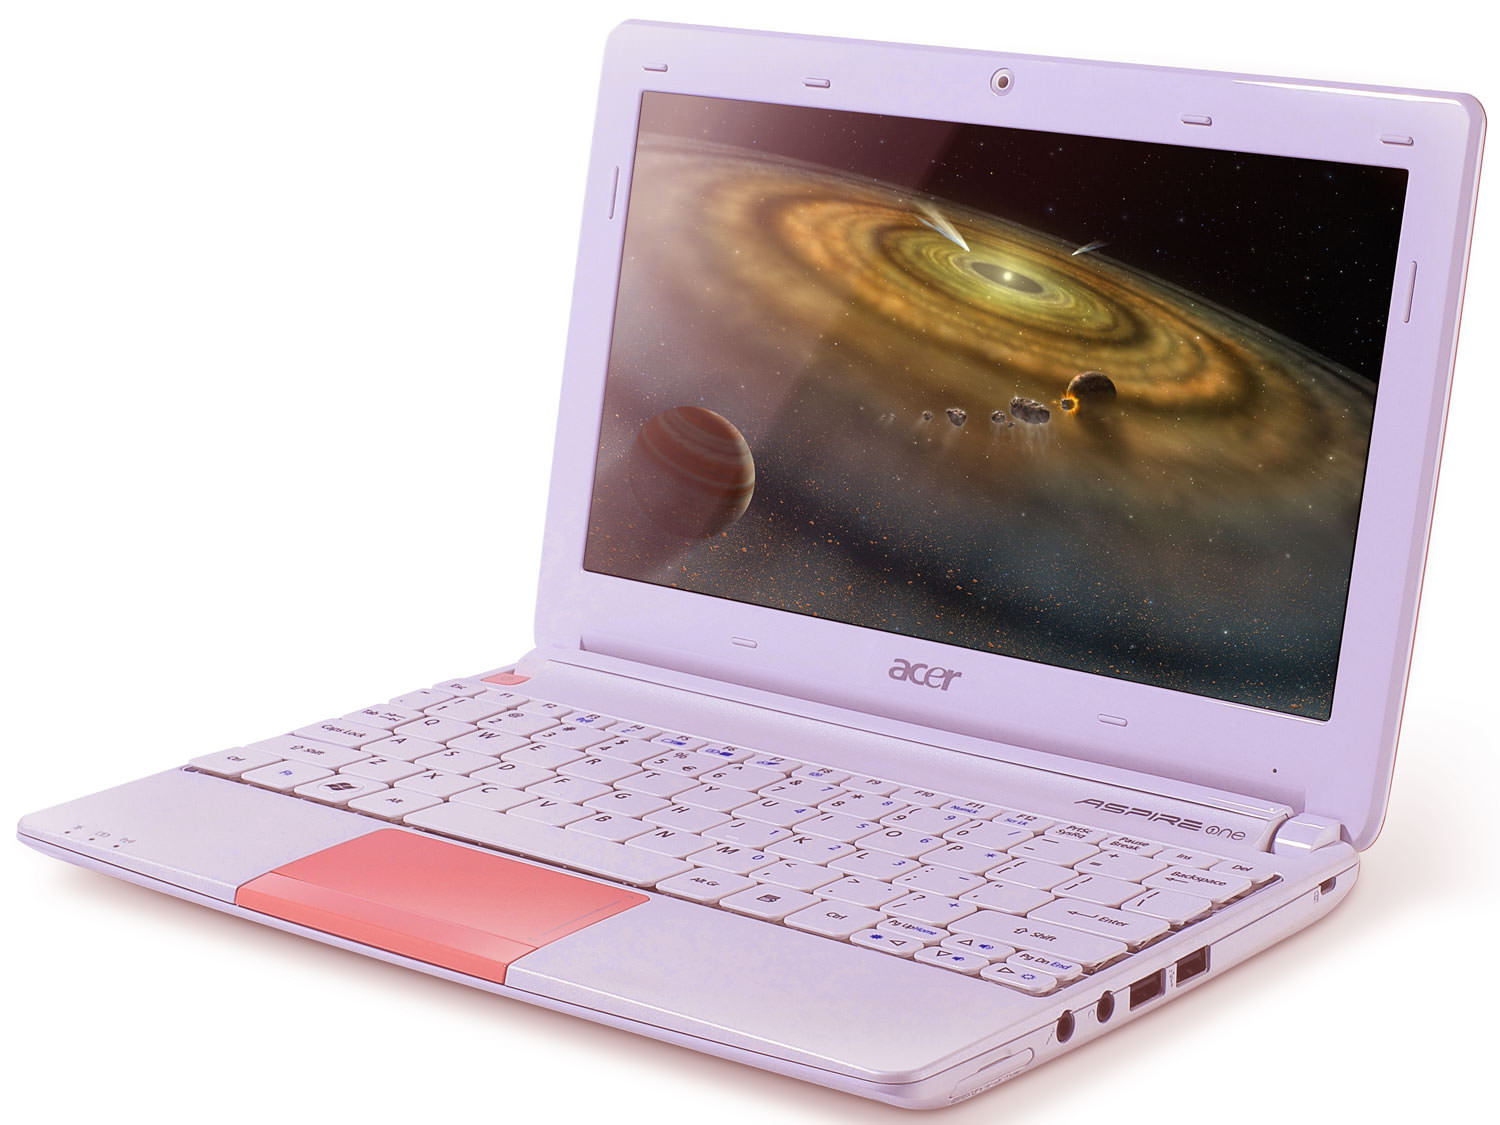 Acer Aspire One AOHappy2 Netbook (Atom Dual Core/1 GB/320 GB/Windows 7) Price